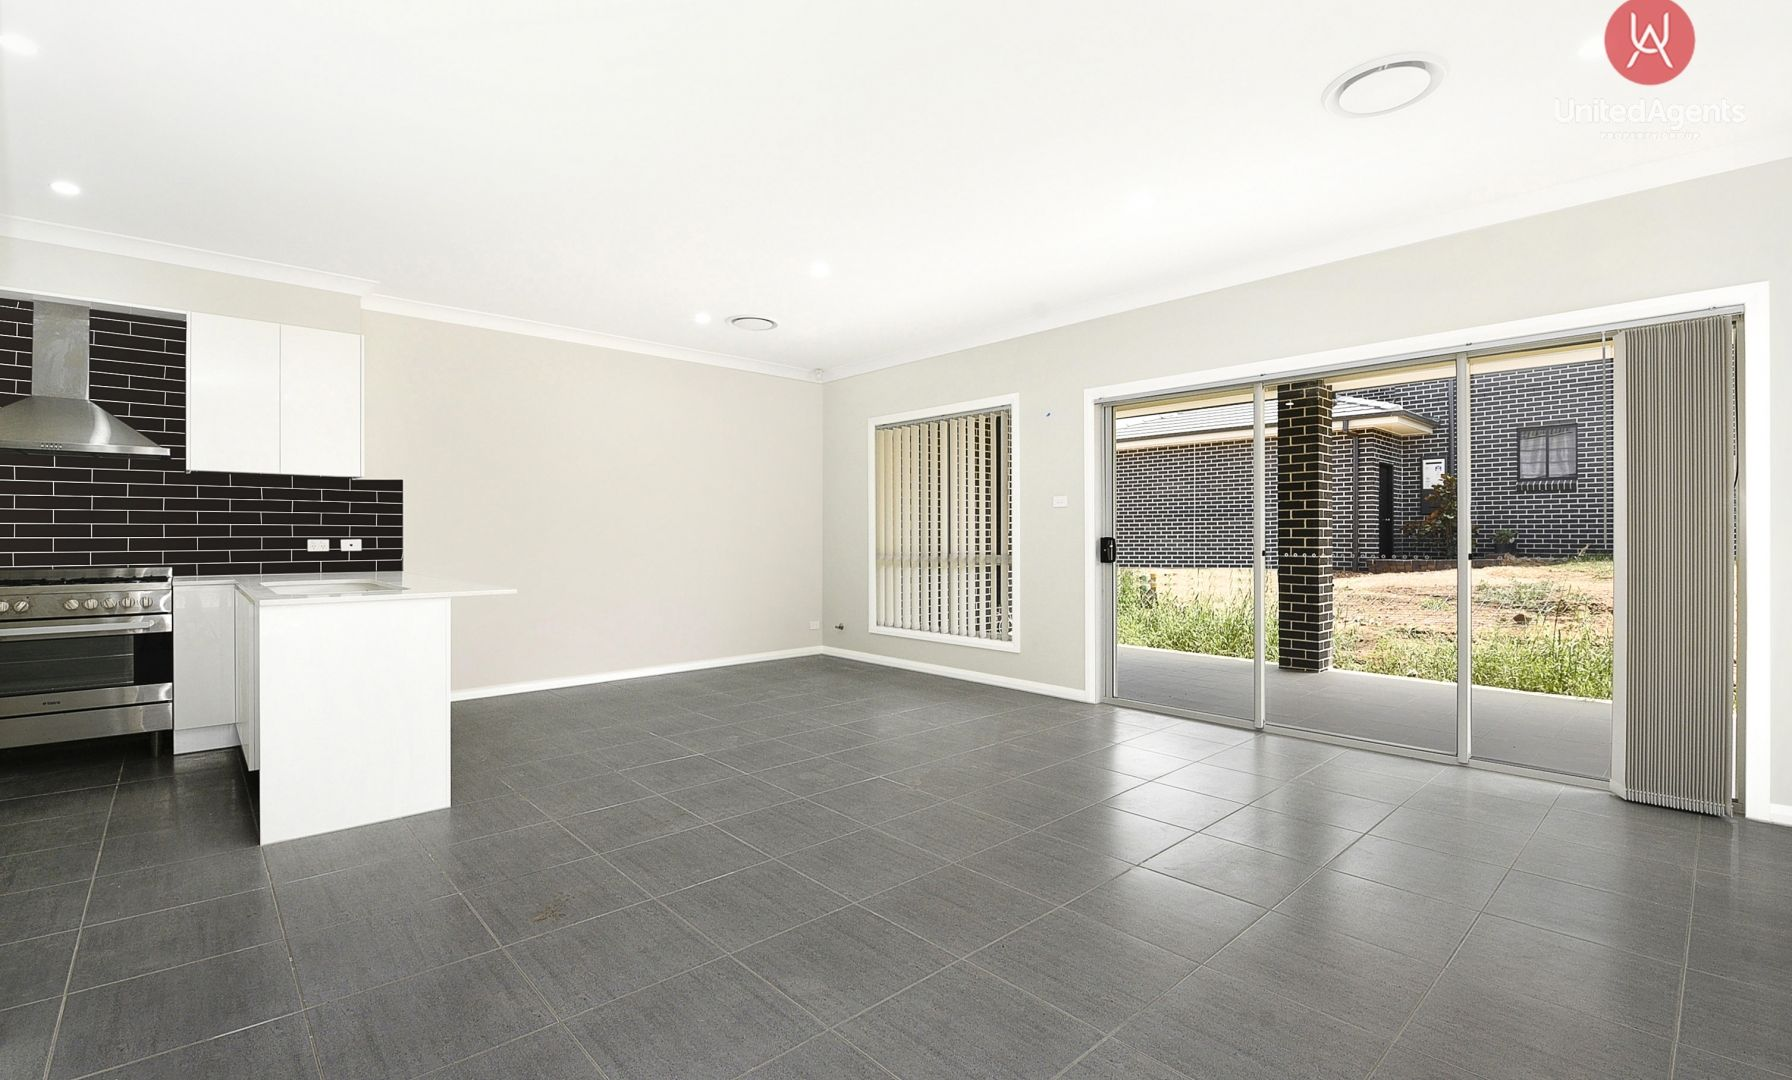 Lot 1 at 12 Hinton Loop, Oran Park NSW 2570, Image 2